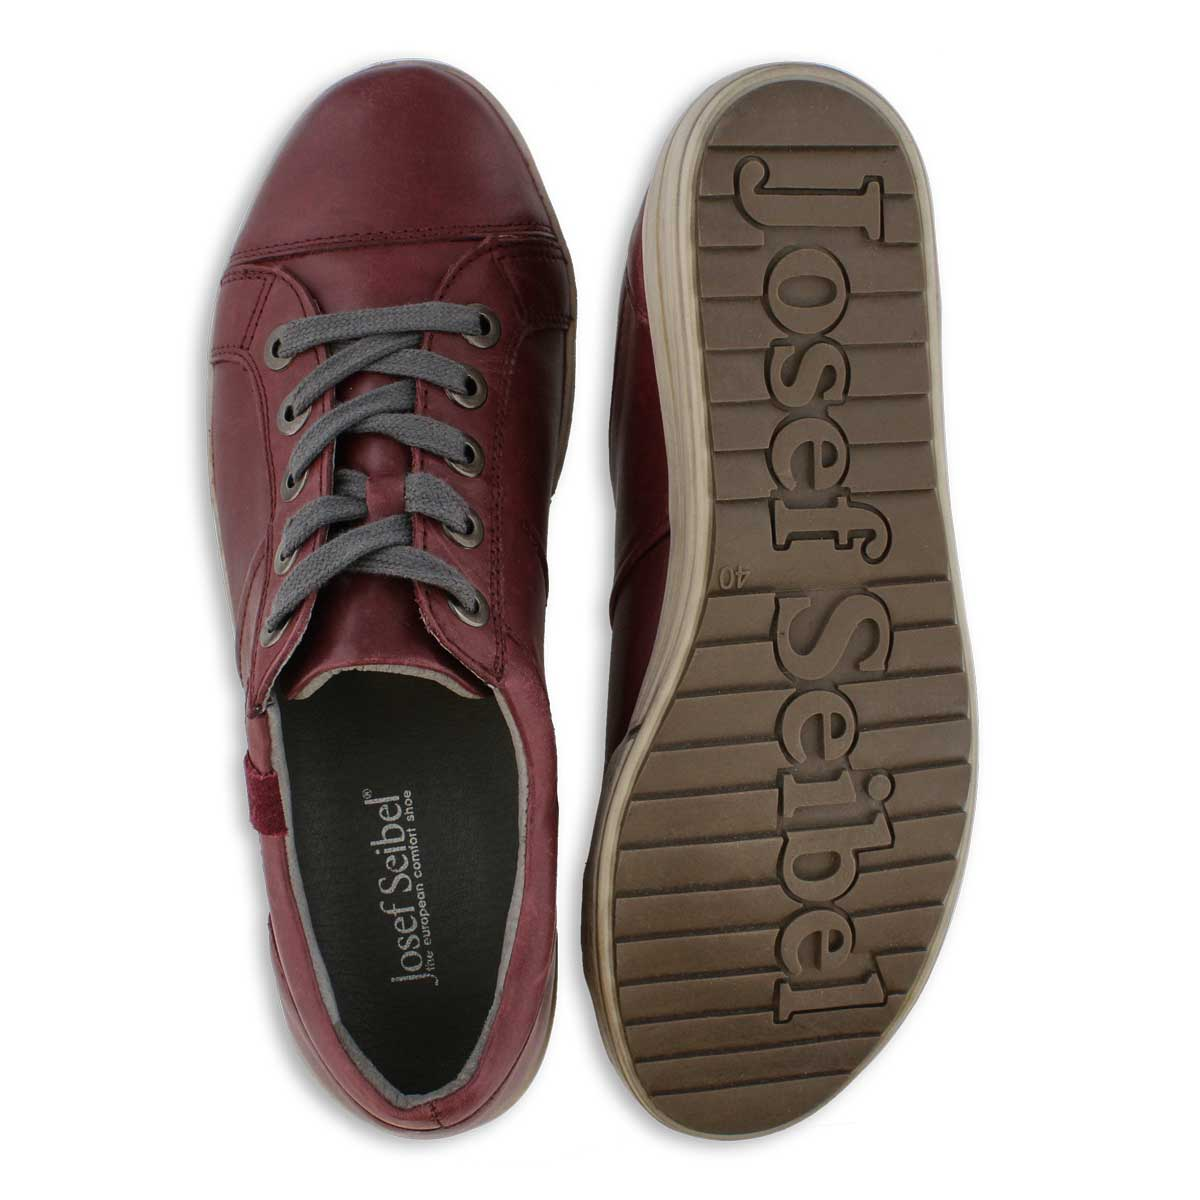 Lds Dany59 bordo lace up casual snkr